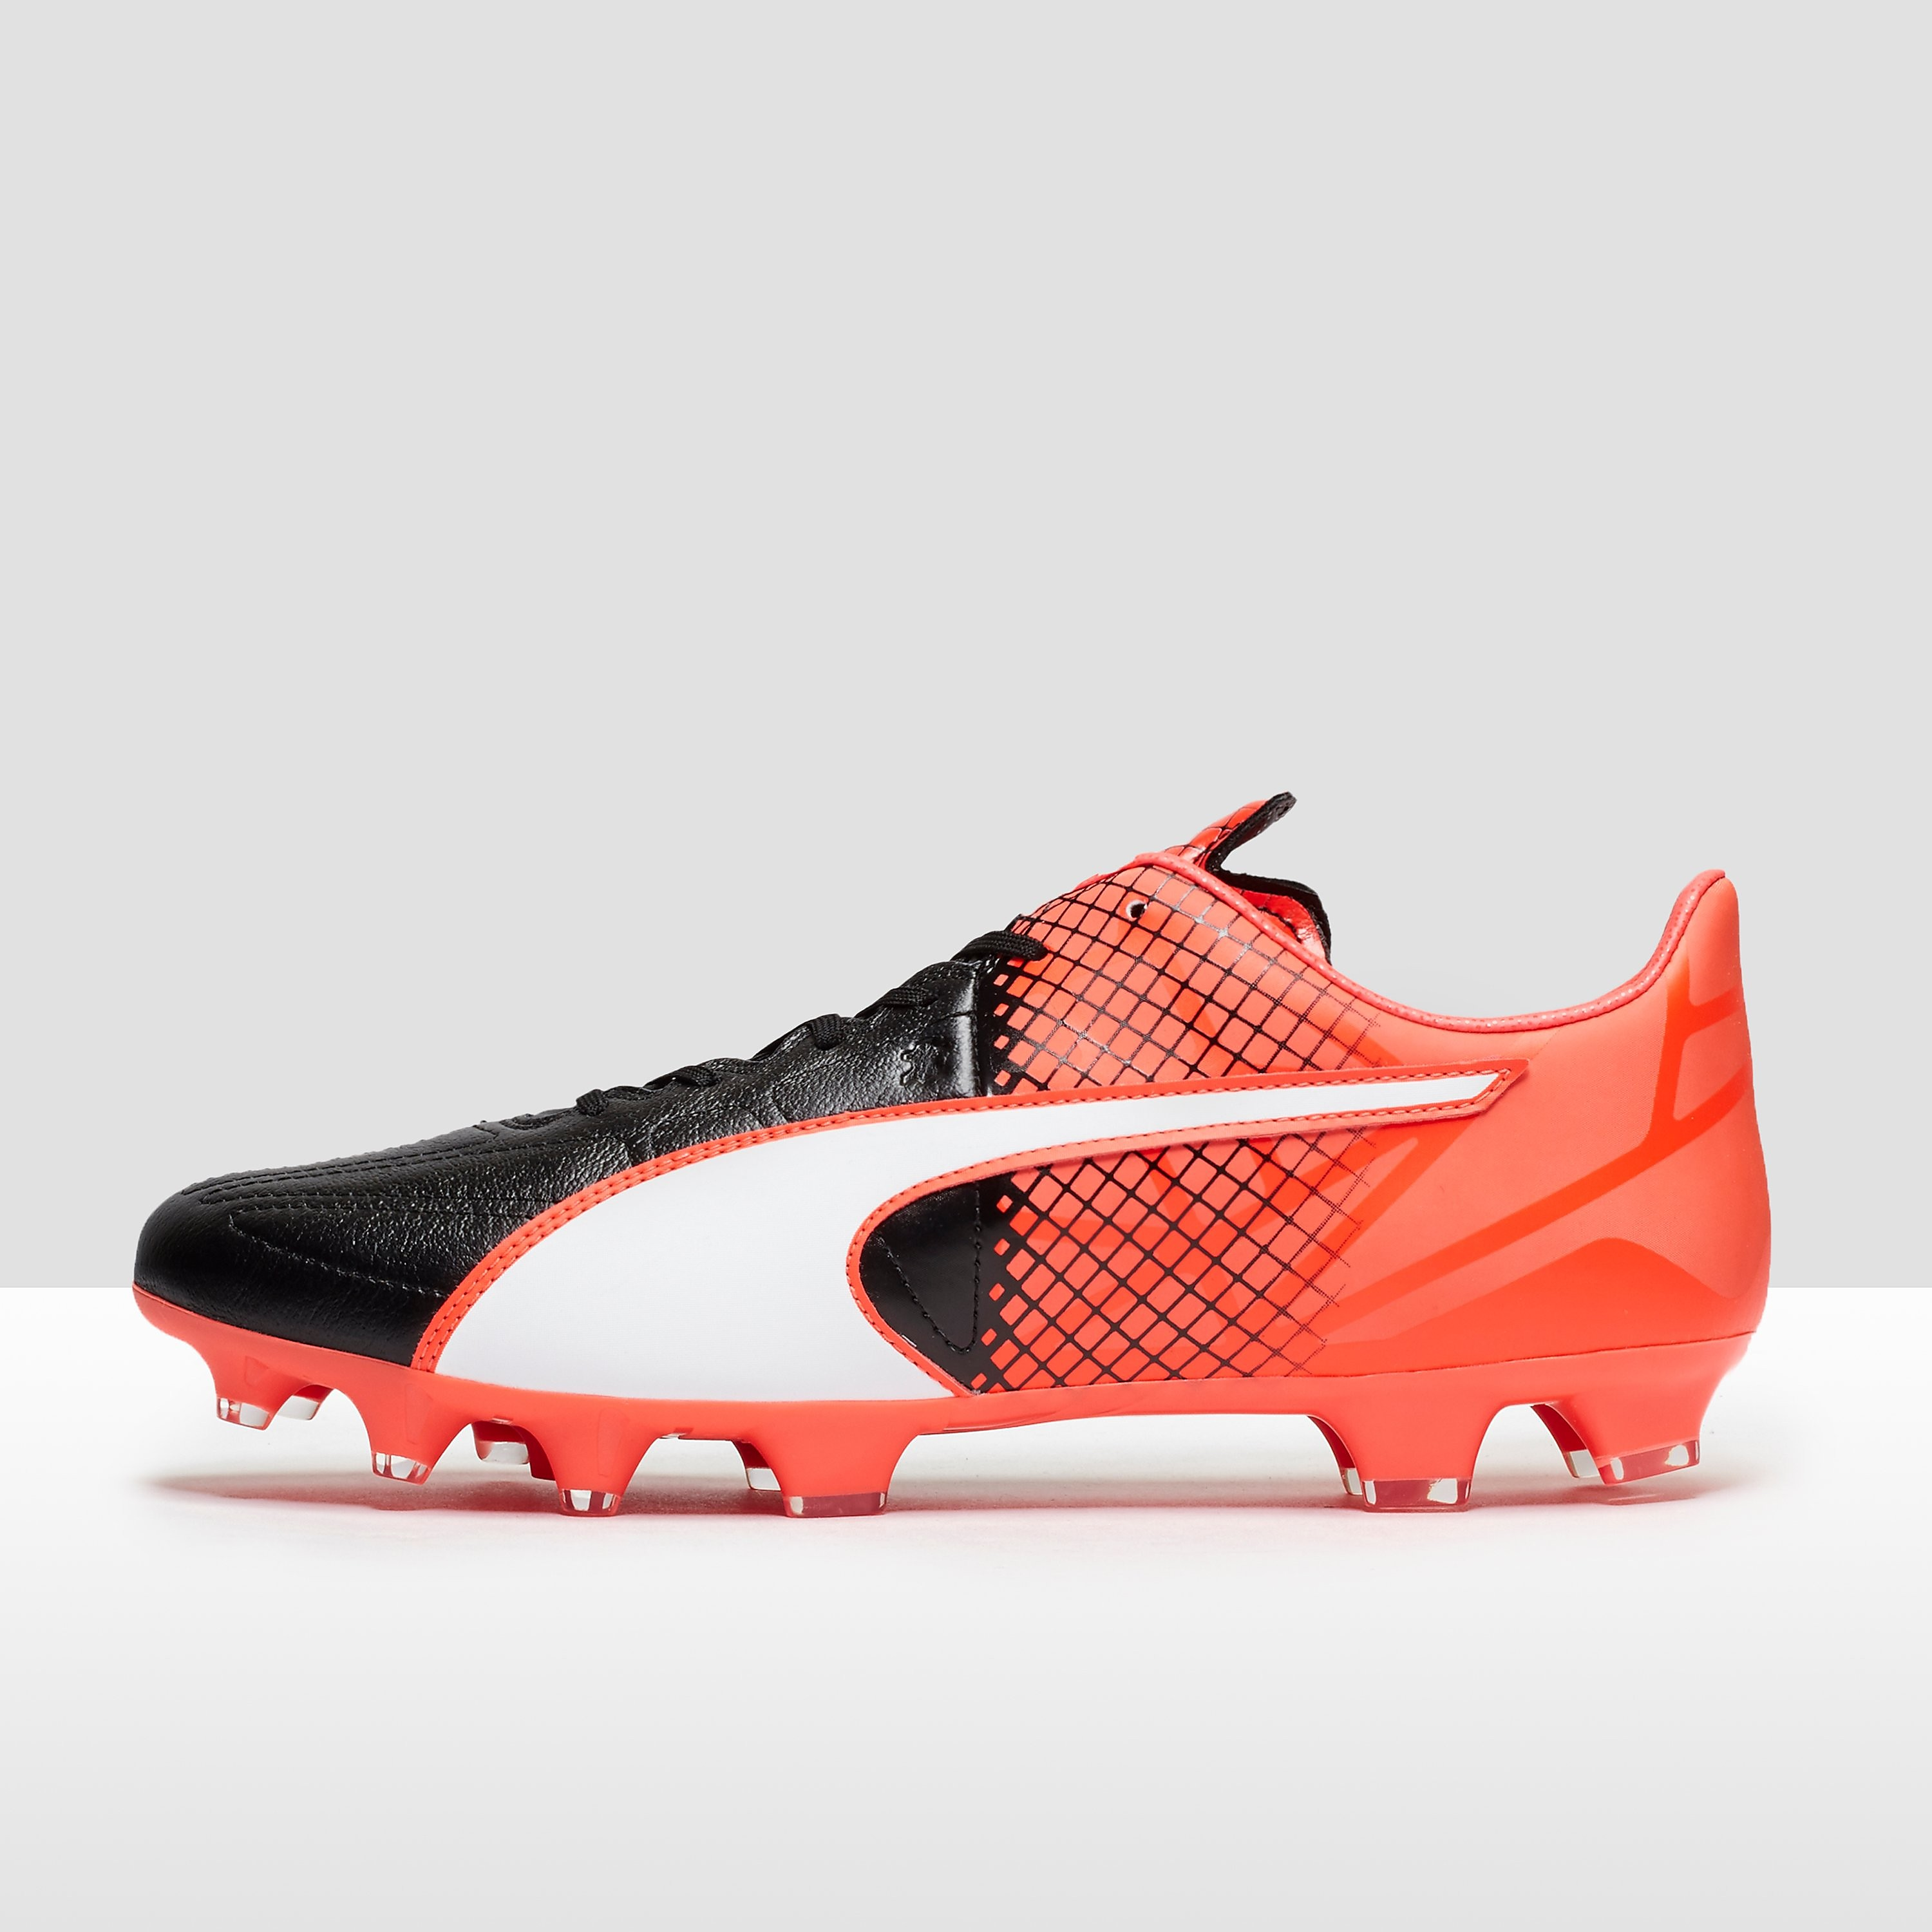 Puma EVOSPEED 3.5 LTH FIRM GROUND MEN'S FOOTBALL BOOTS